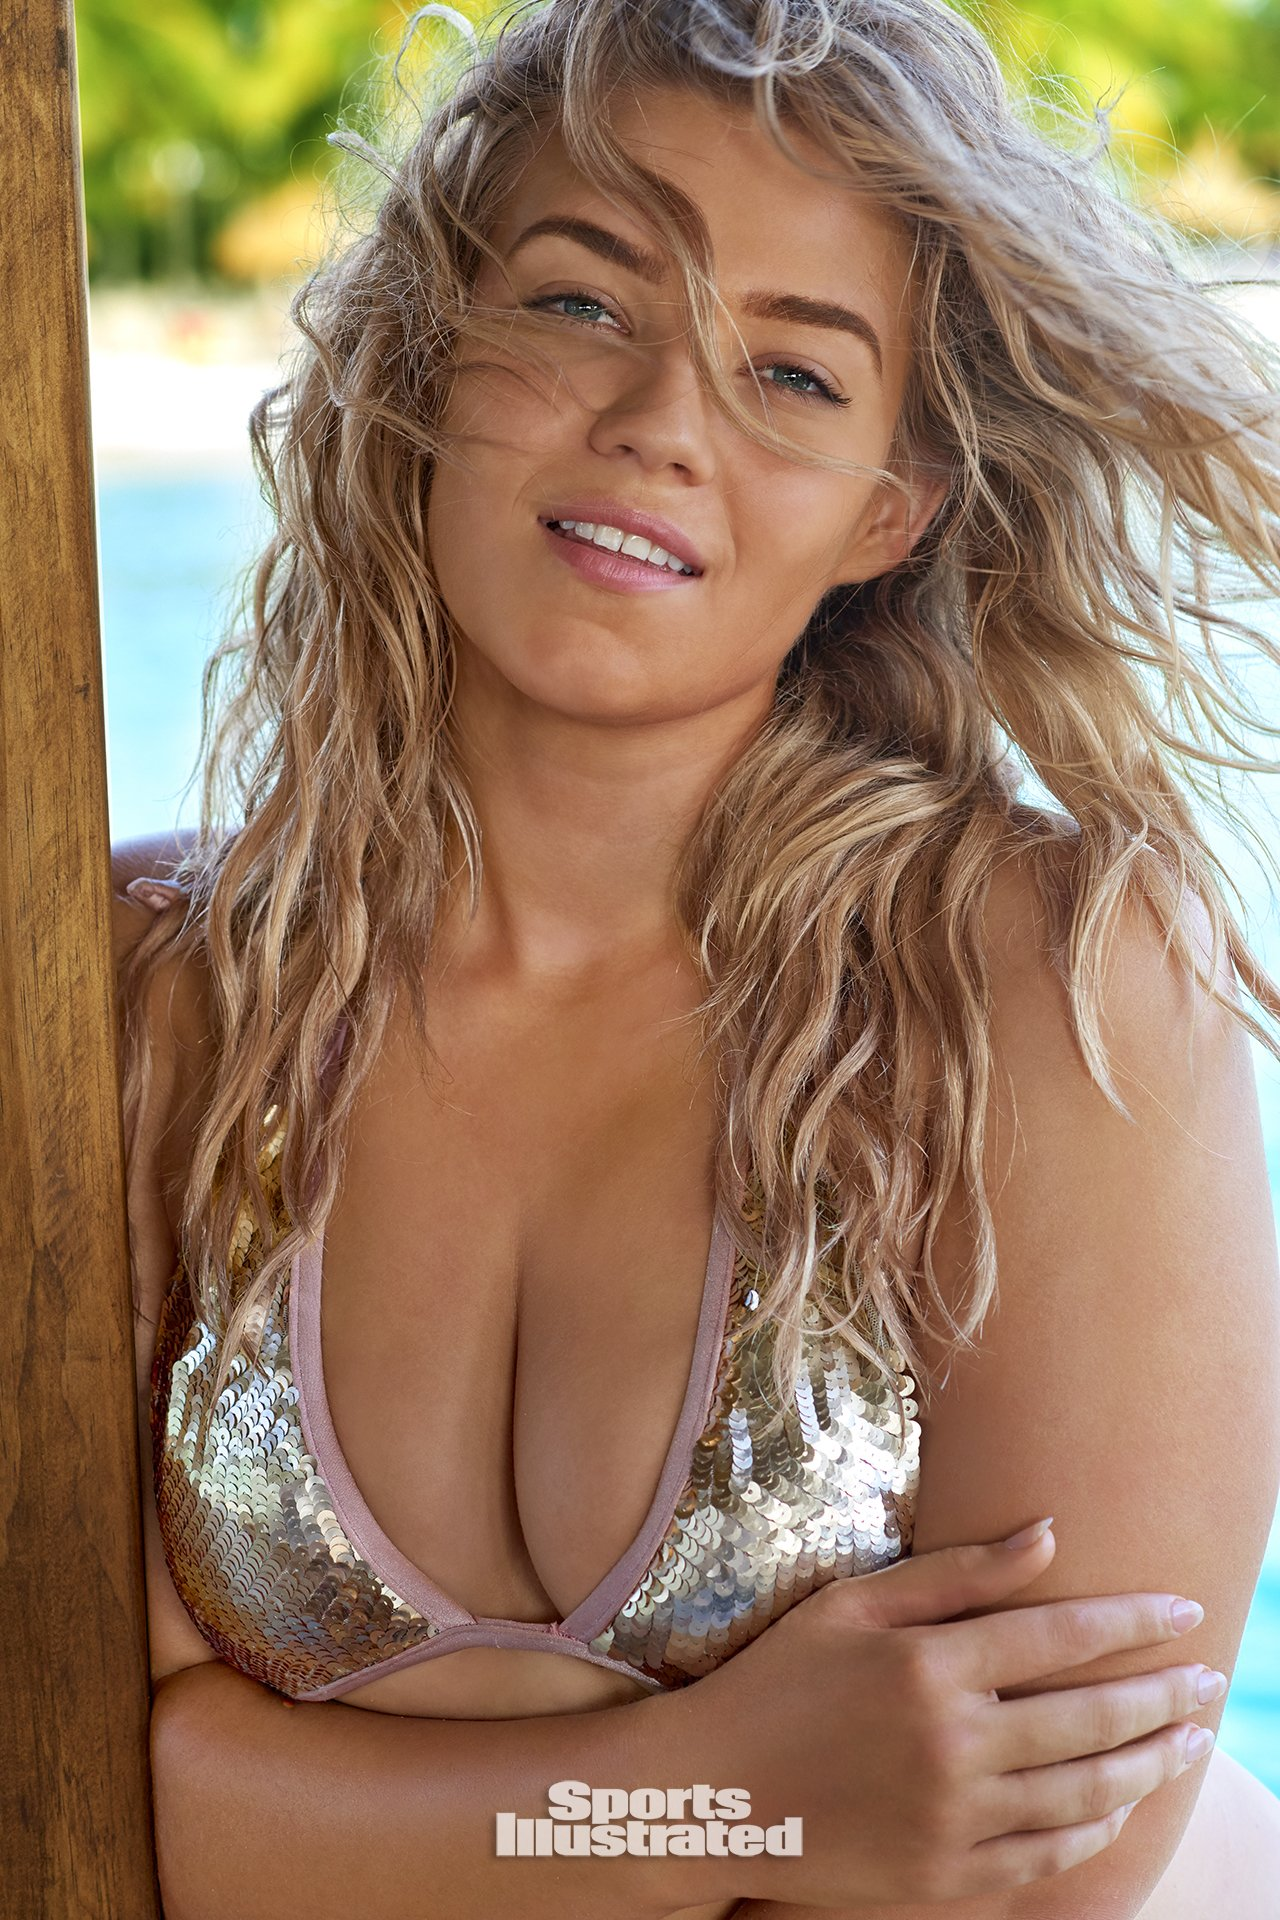 Sports Illustrated Swimsuit Issue 2018020.jpg